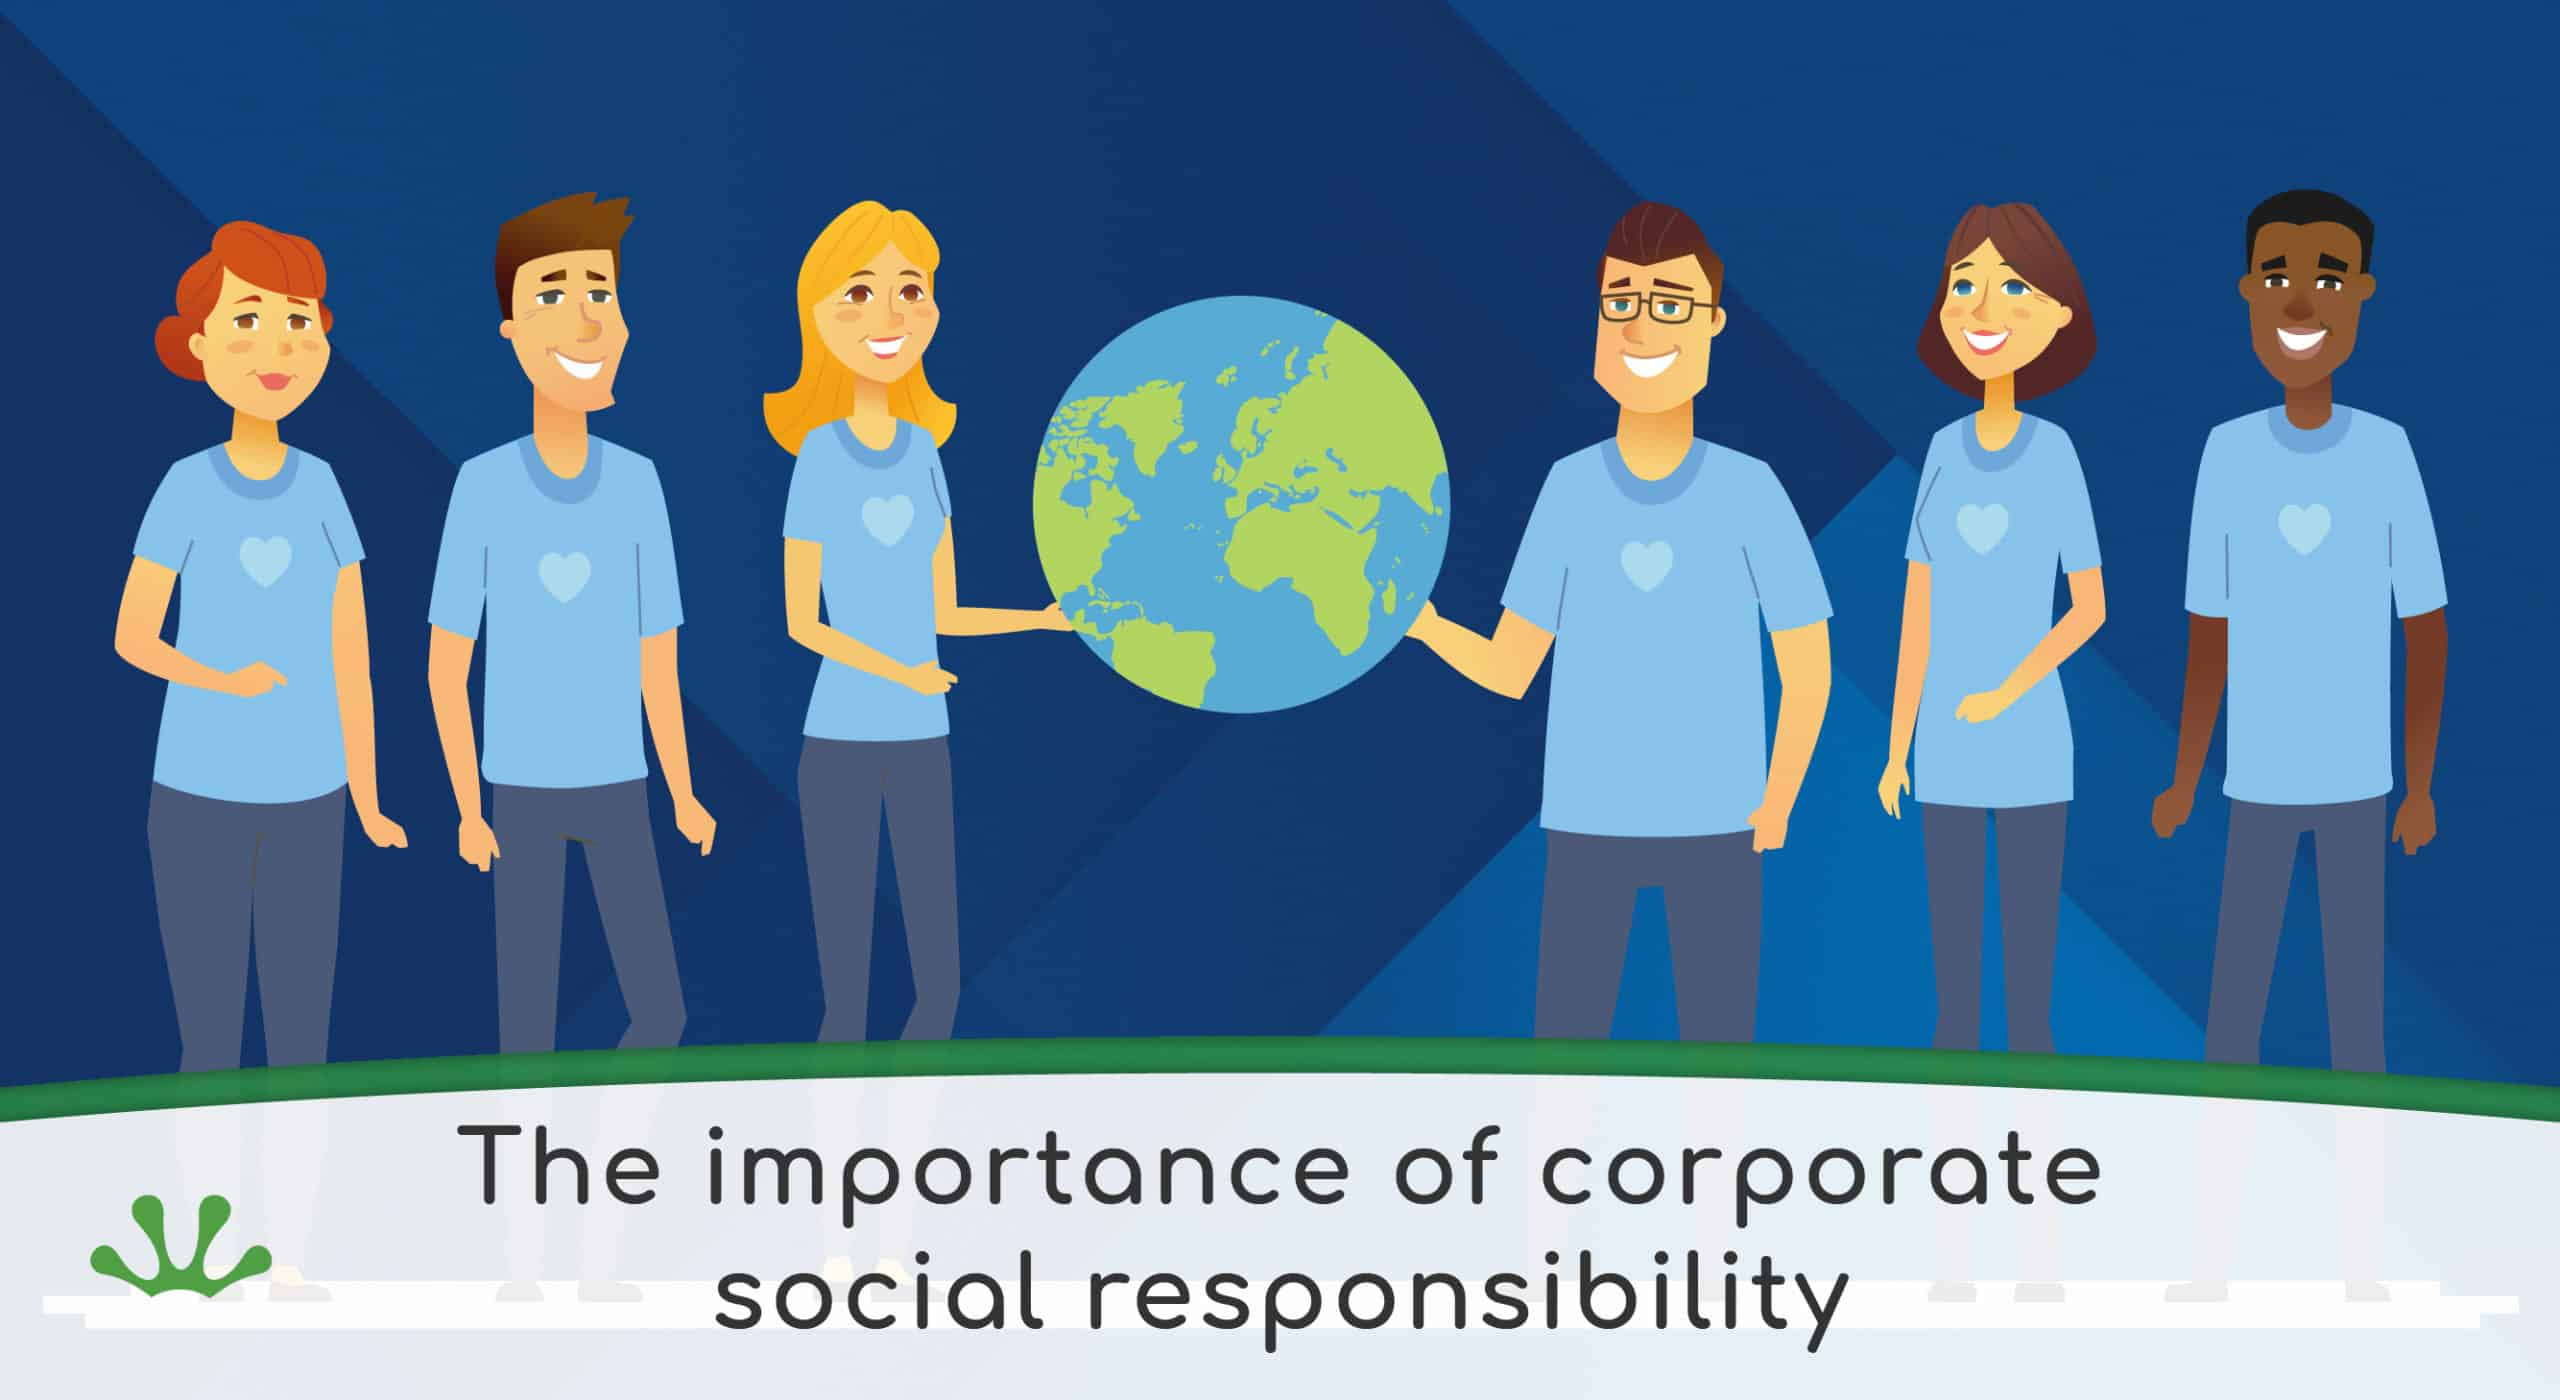 Illustration showing corporate social responsibility